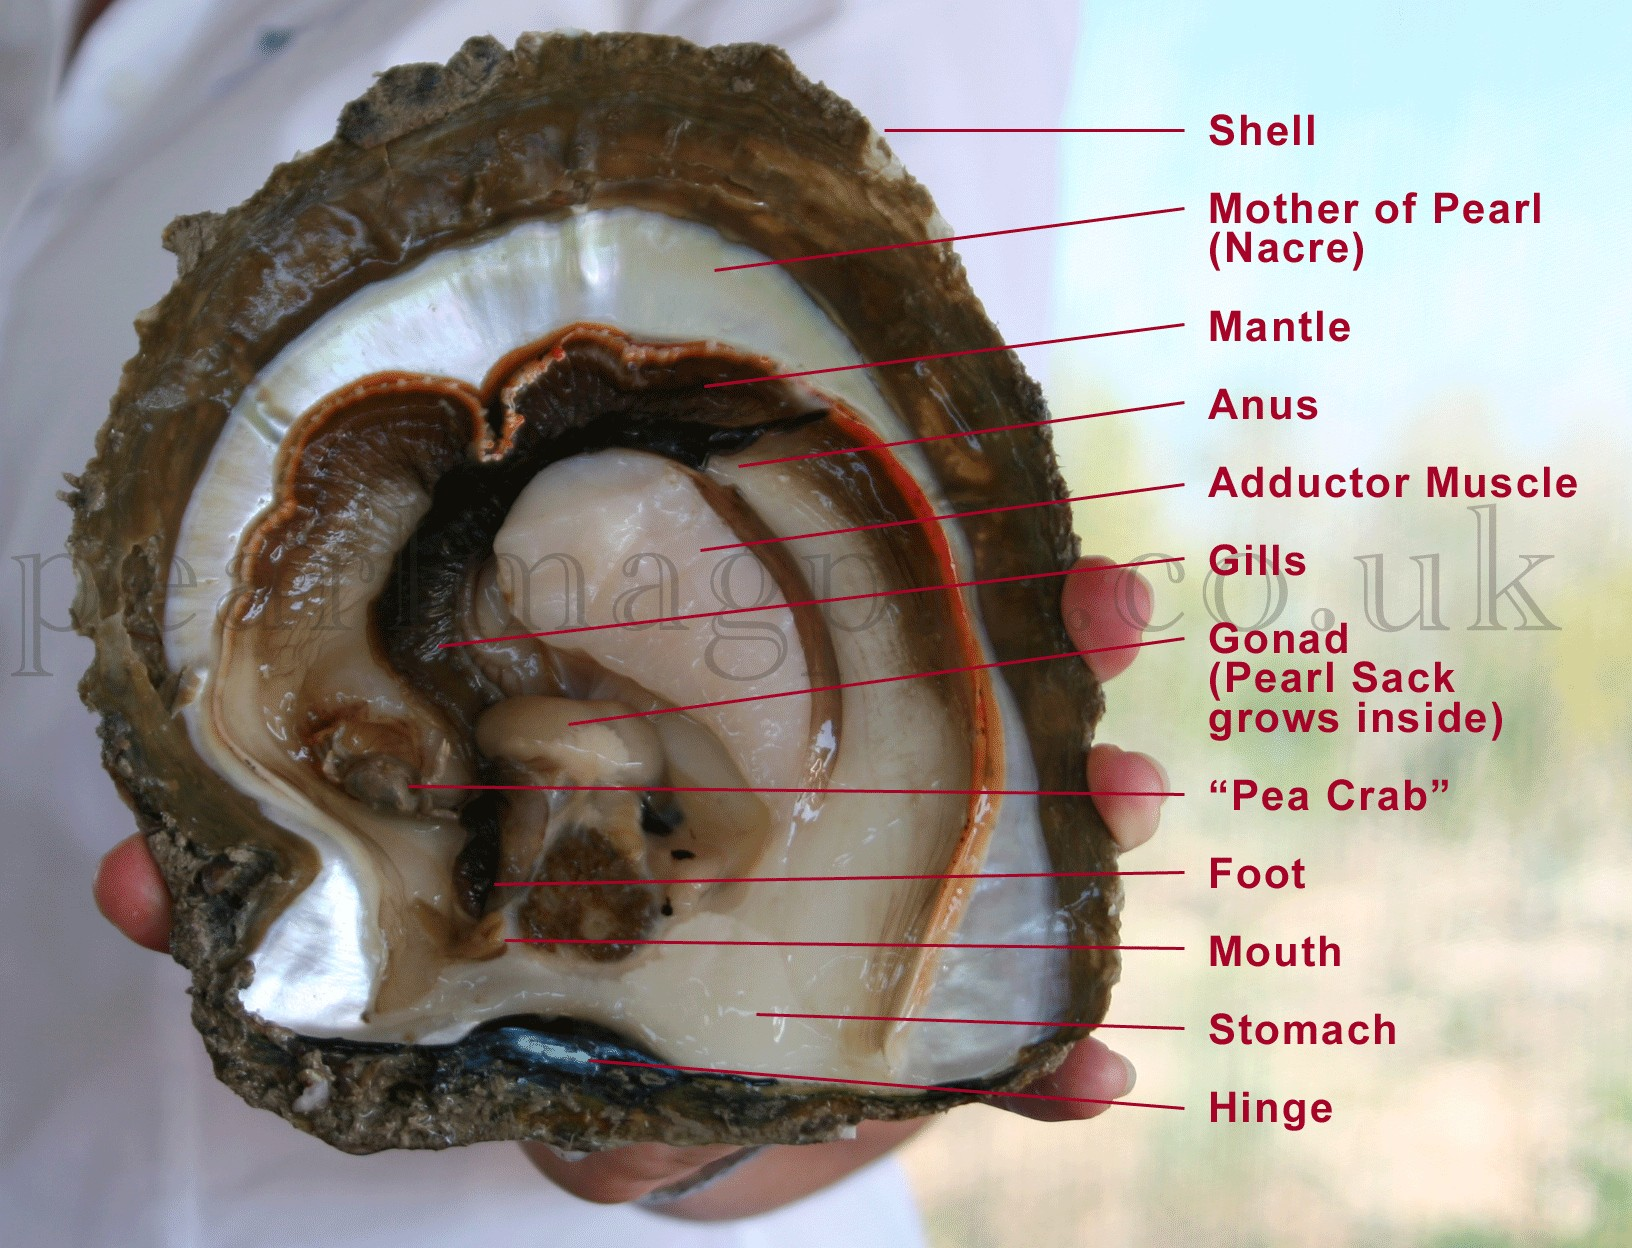 Silver Lip Pearl Oyster Internal Organ Anatomy Diagram